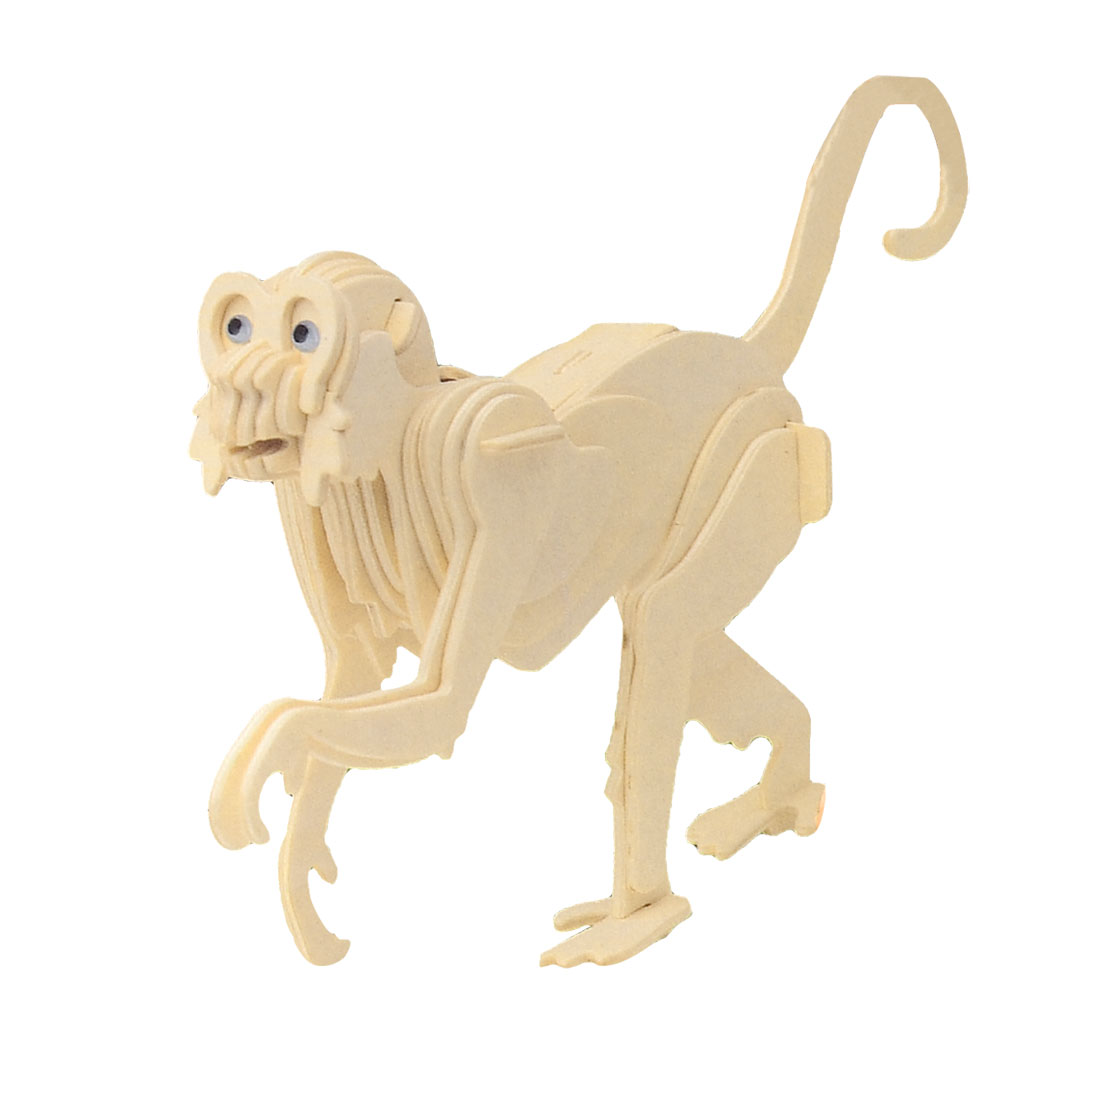 Monkey Design Wooden Model Intelligence Puzzle Toy Woodcraft Construction Kit for Kid